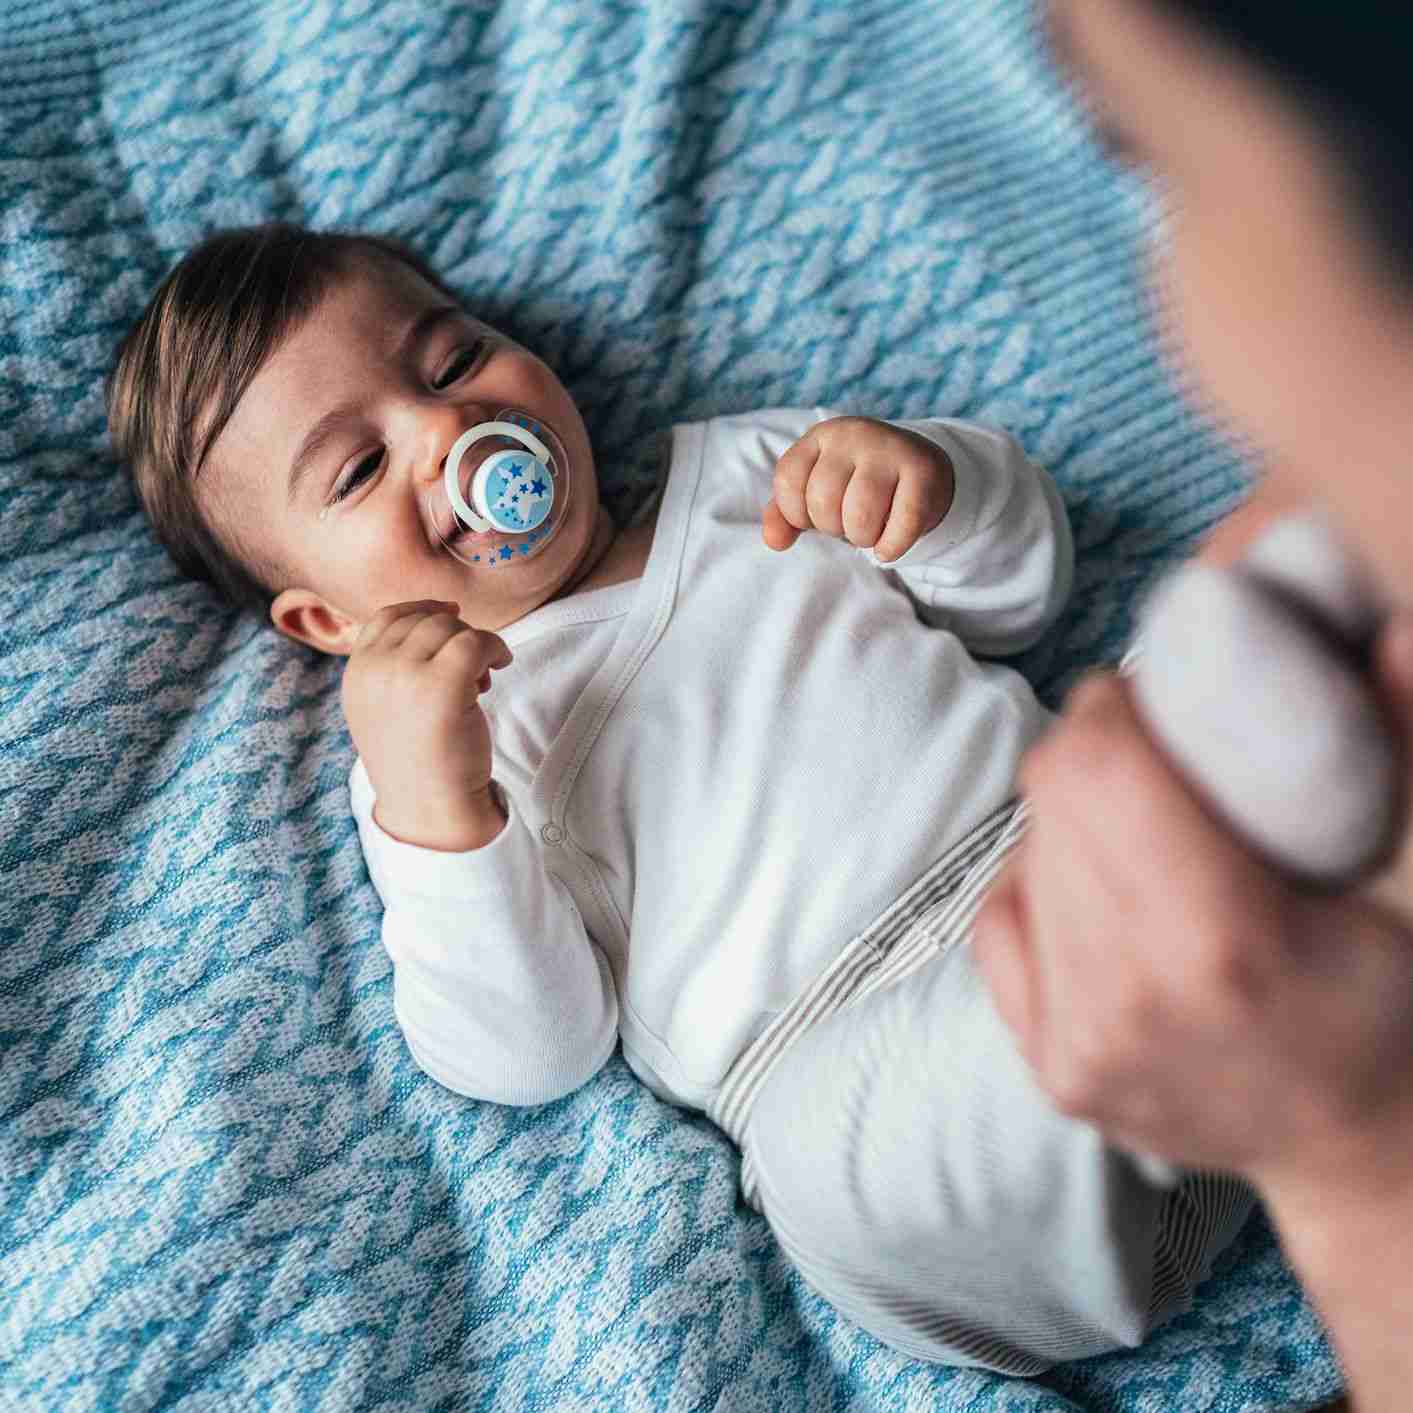 ideal age to give pacifier